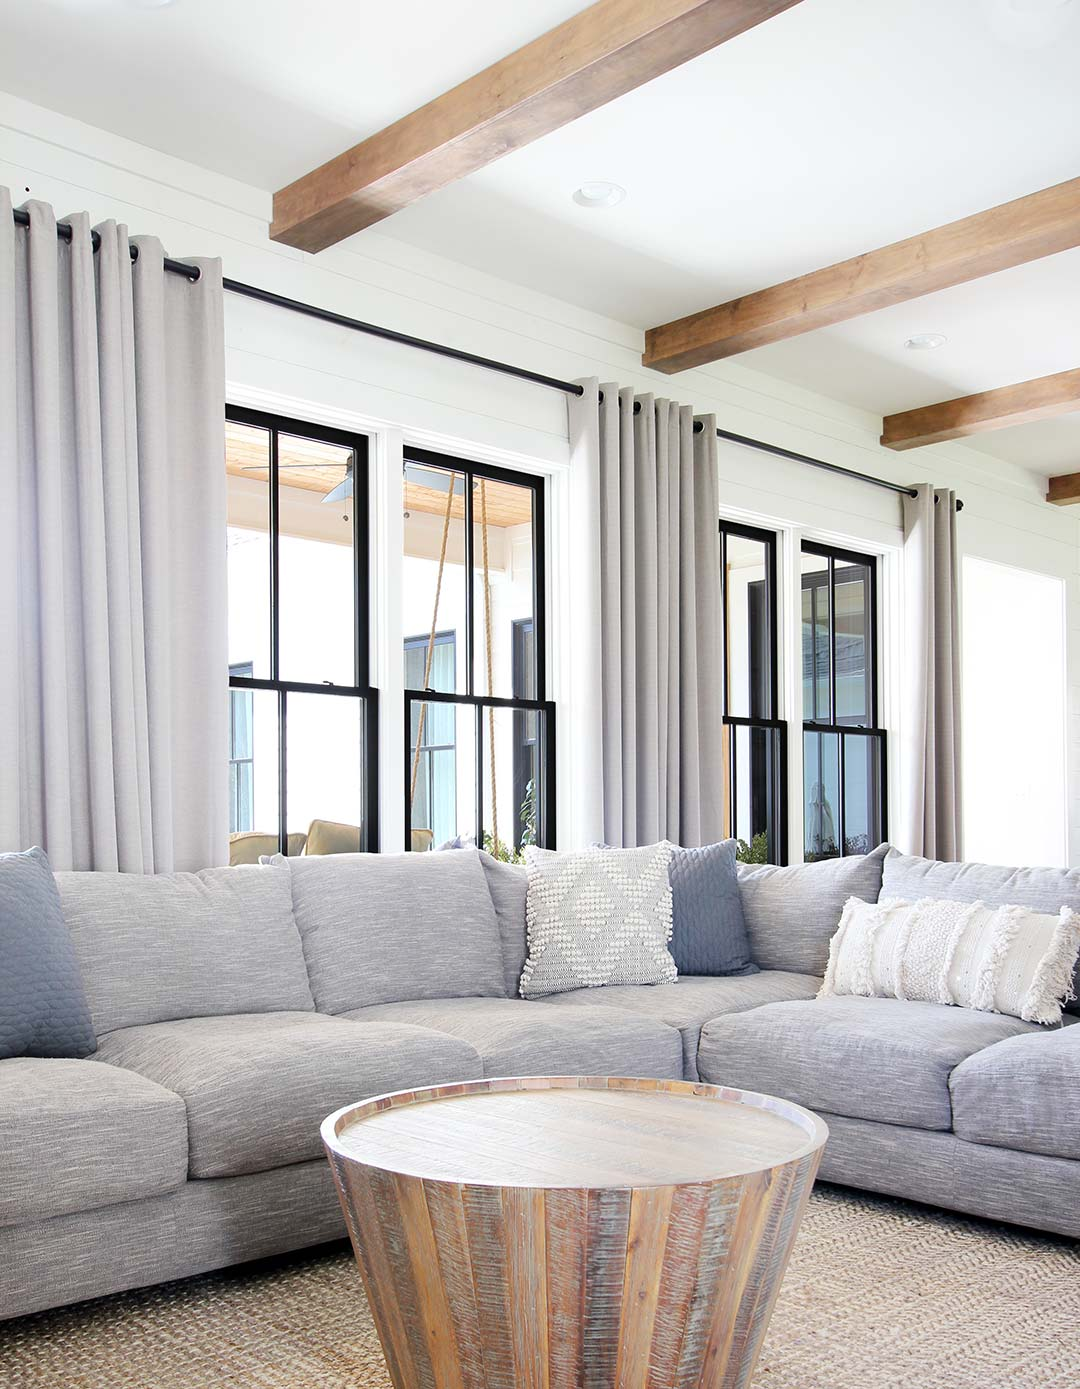 How To Build Box Beams Plank And Pillow, Wood Beams In Living Room Ceiling